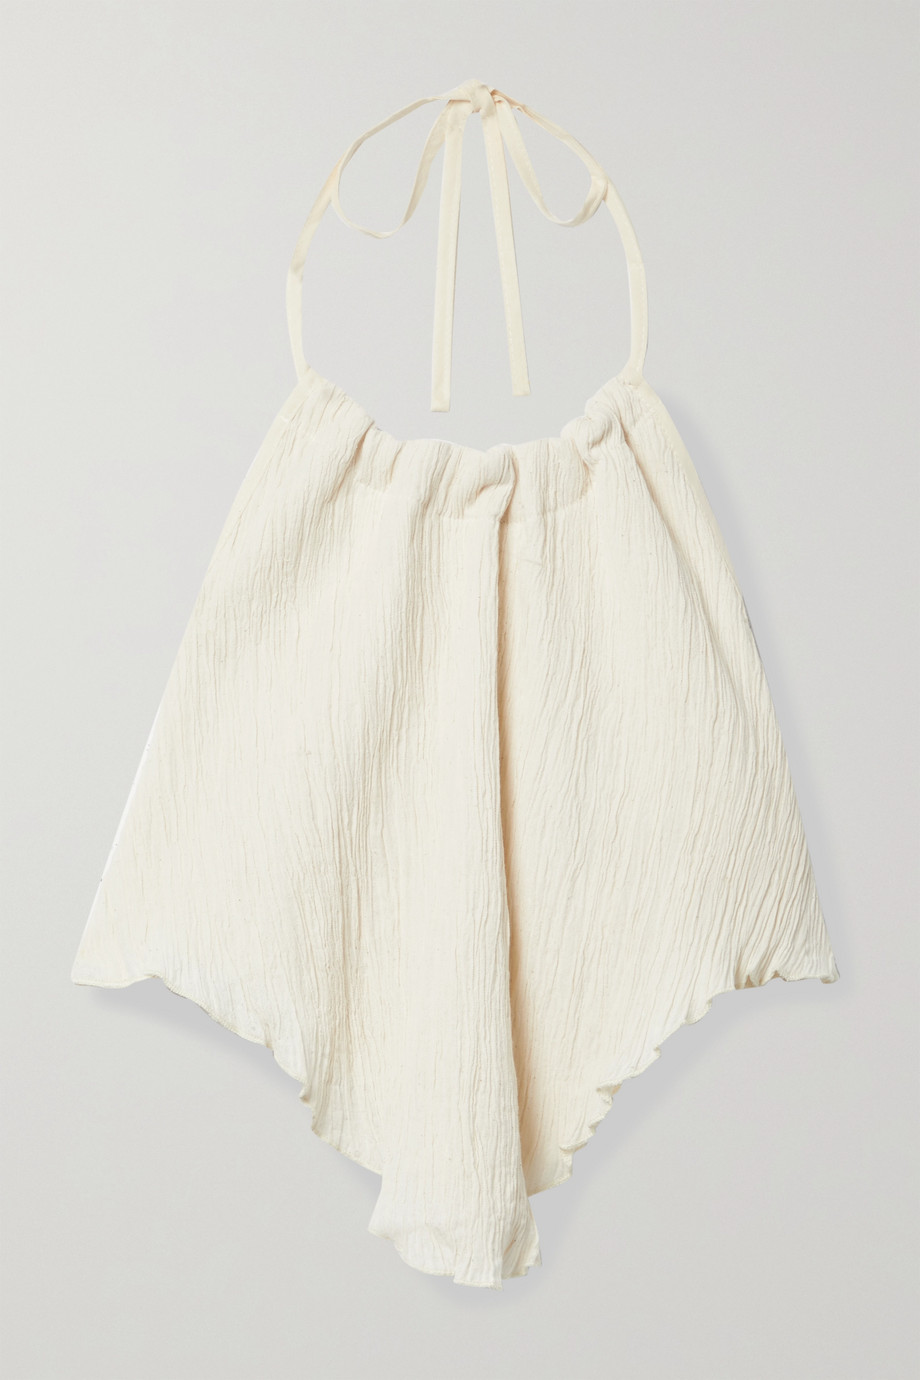 Savannah Morrow The Label + NET SUSTAIN The Jaya crinkled organic cotton-gauze halterneck top